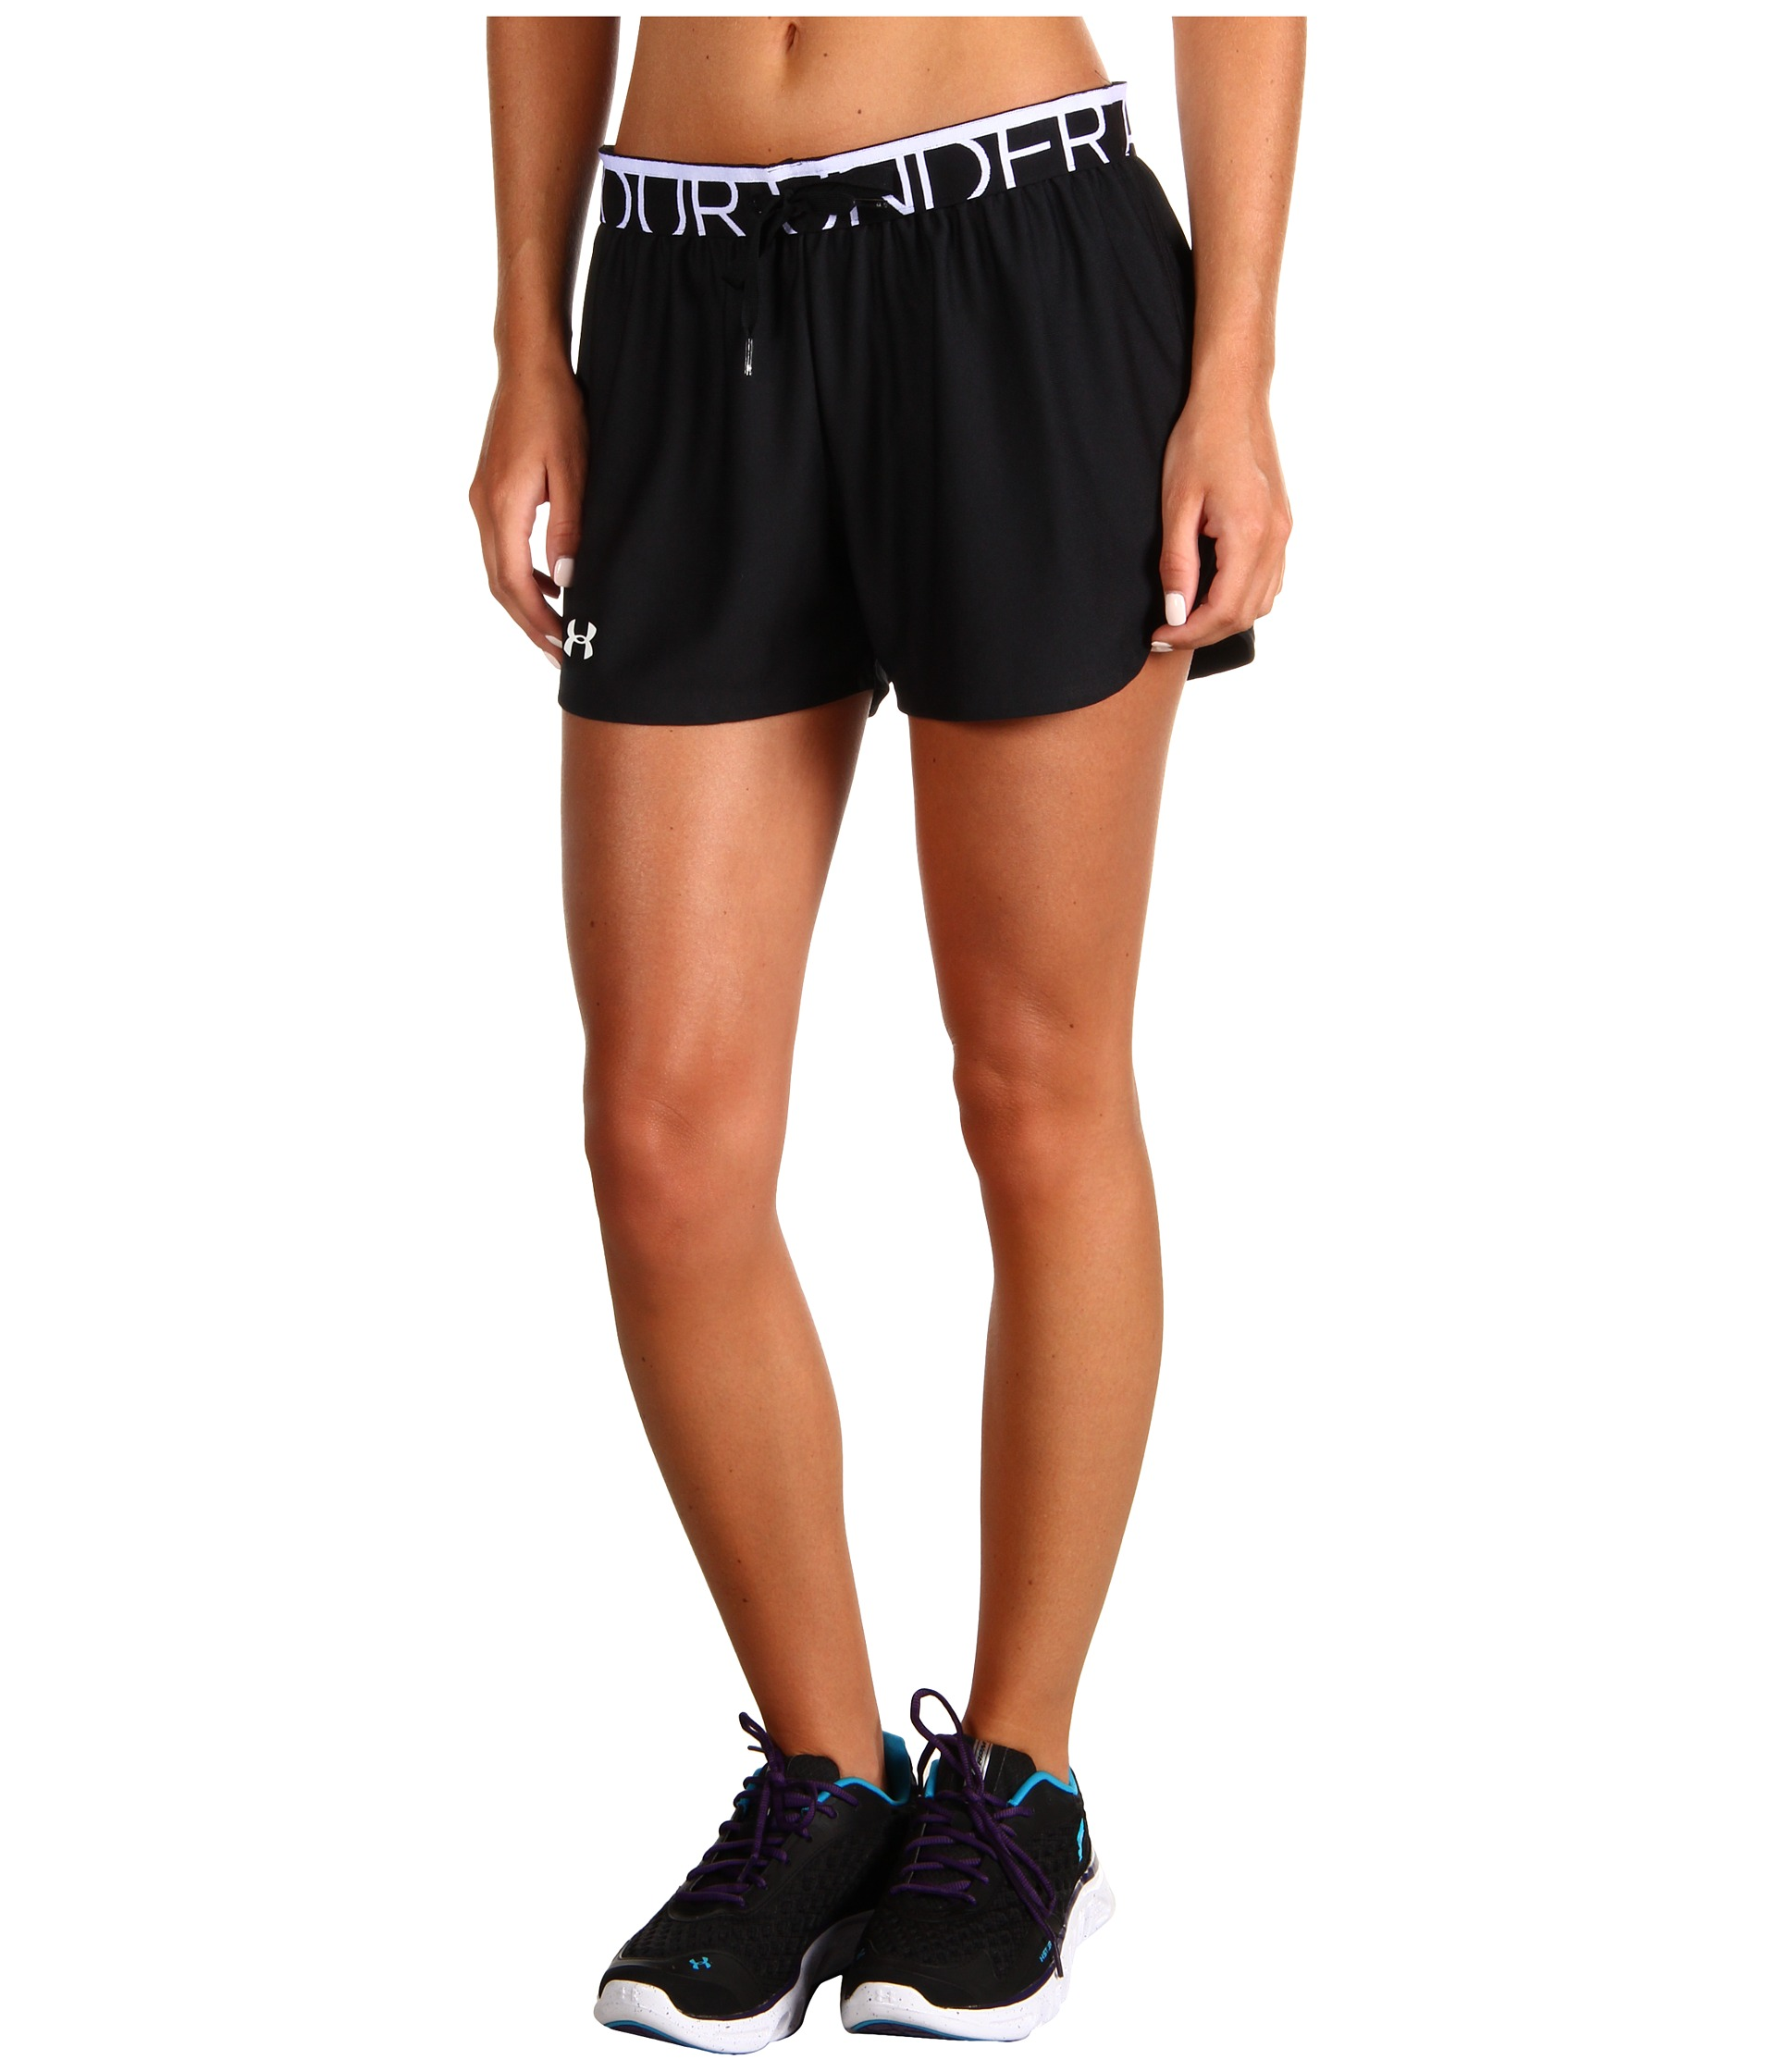 the gallery for underarmour shorts. Black Bedroom Furniture Sets. Home Design Ideas